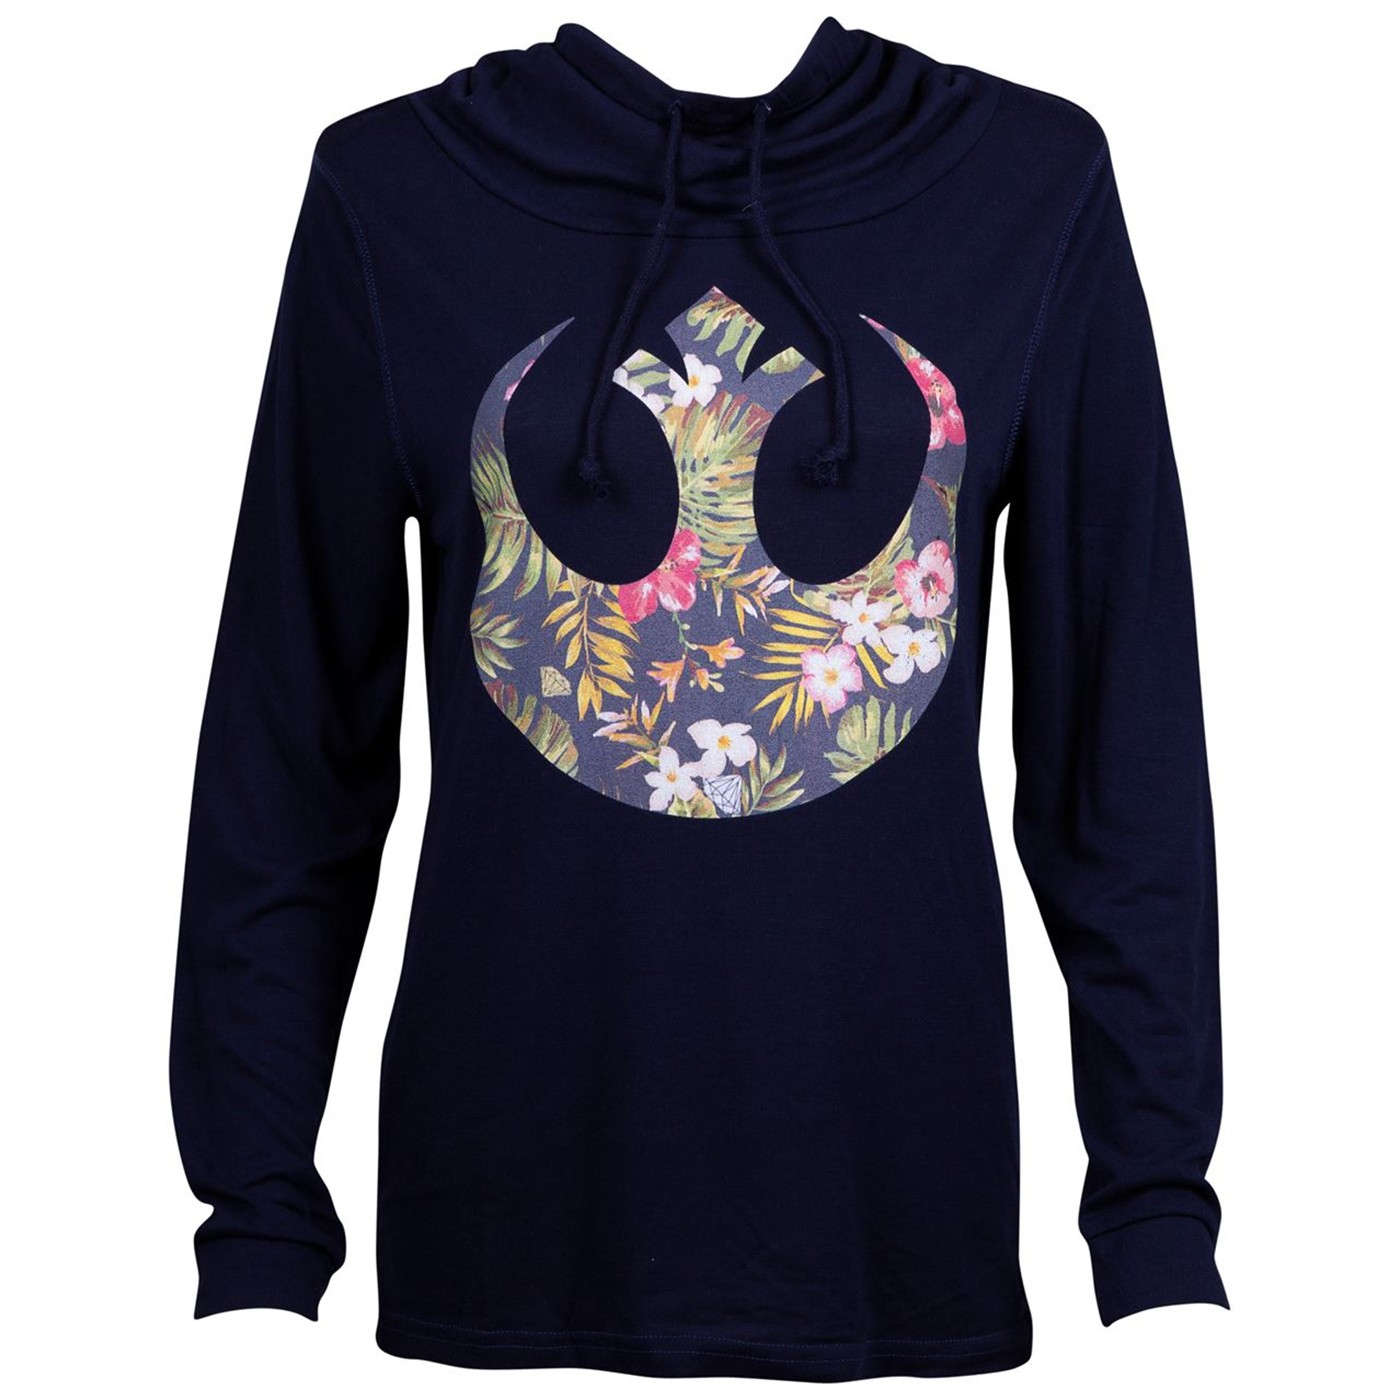 Star Wars Rebel Floral Long Sleeve Women's T-Shirt